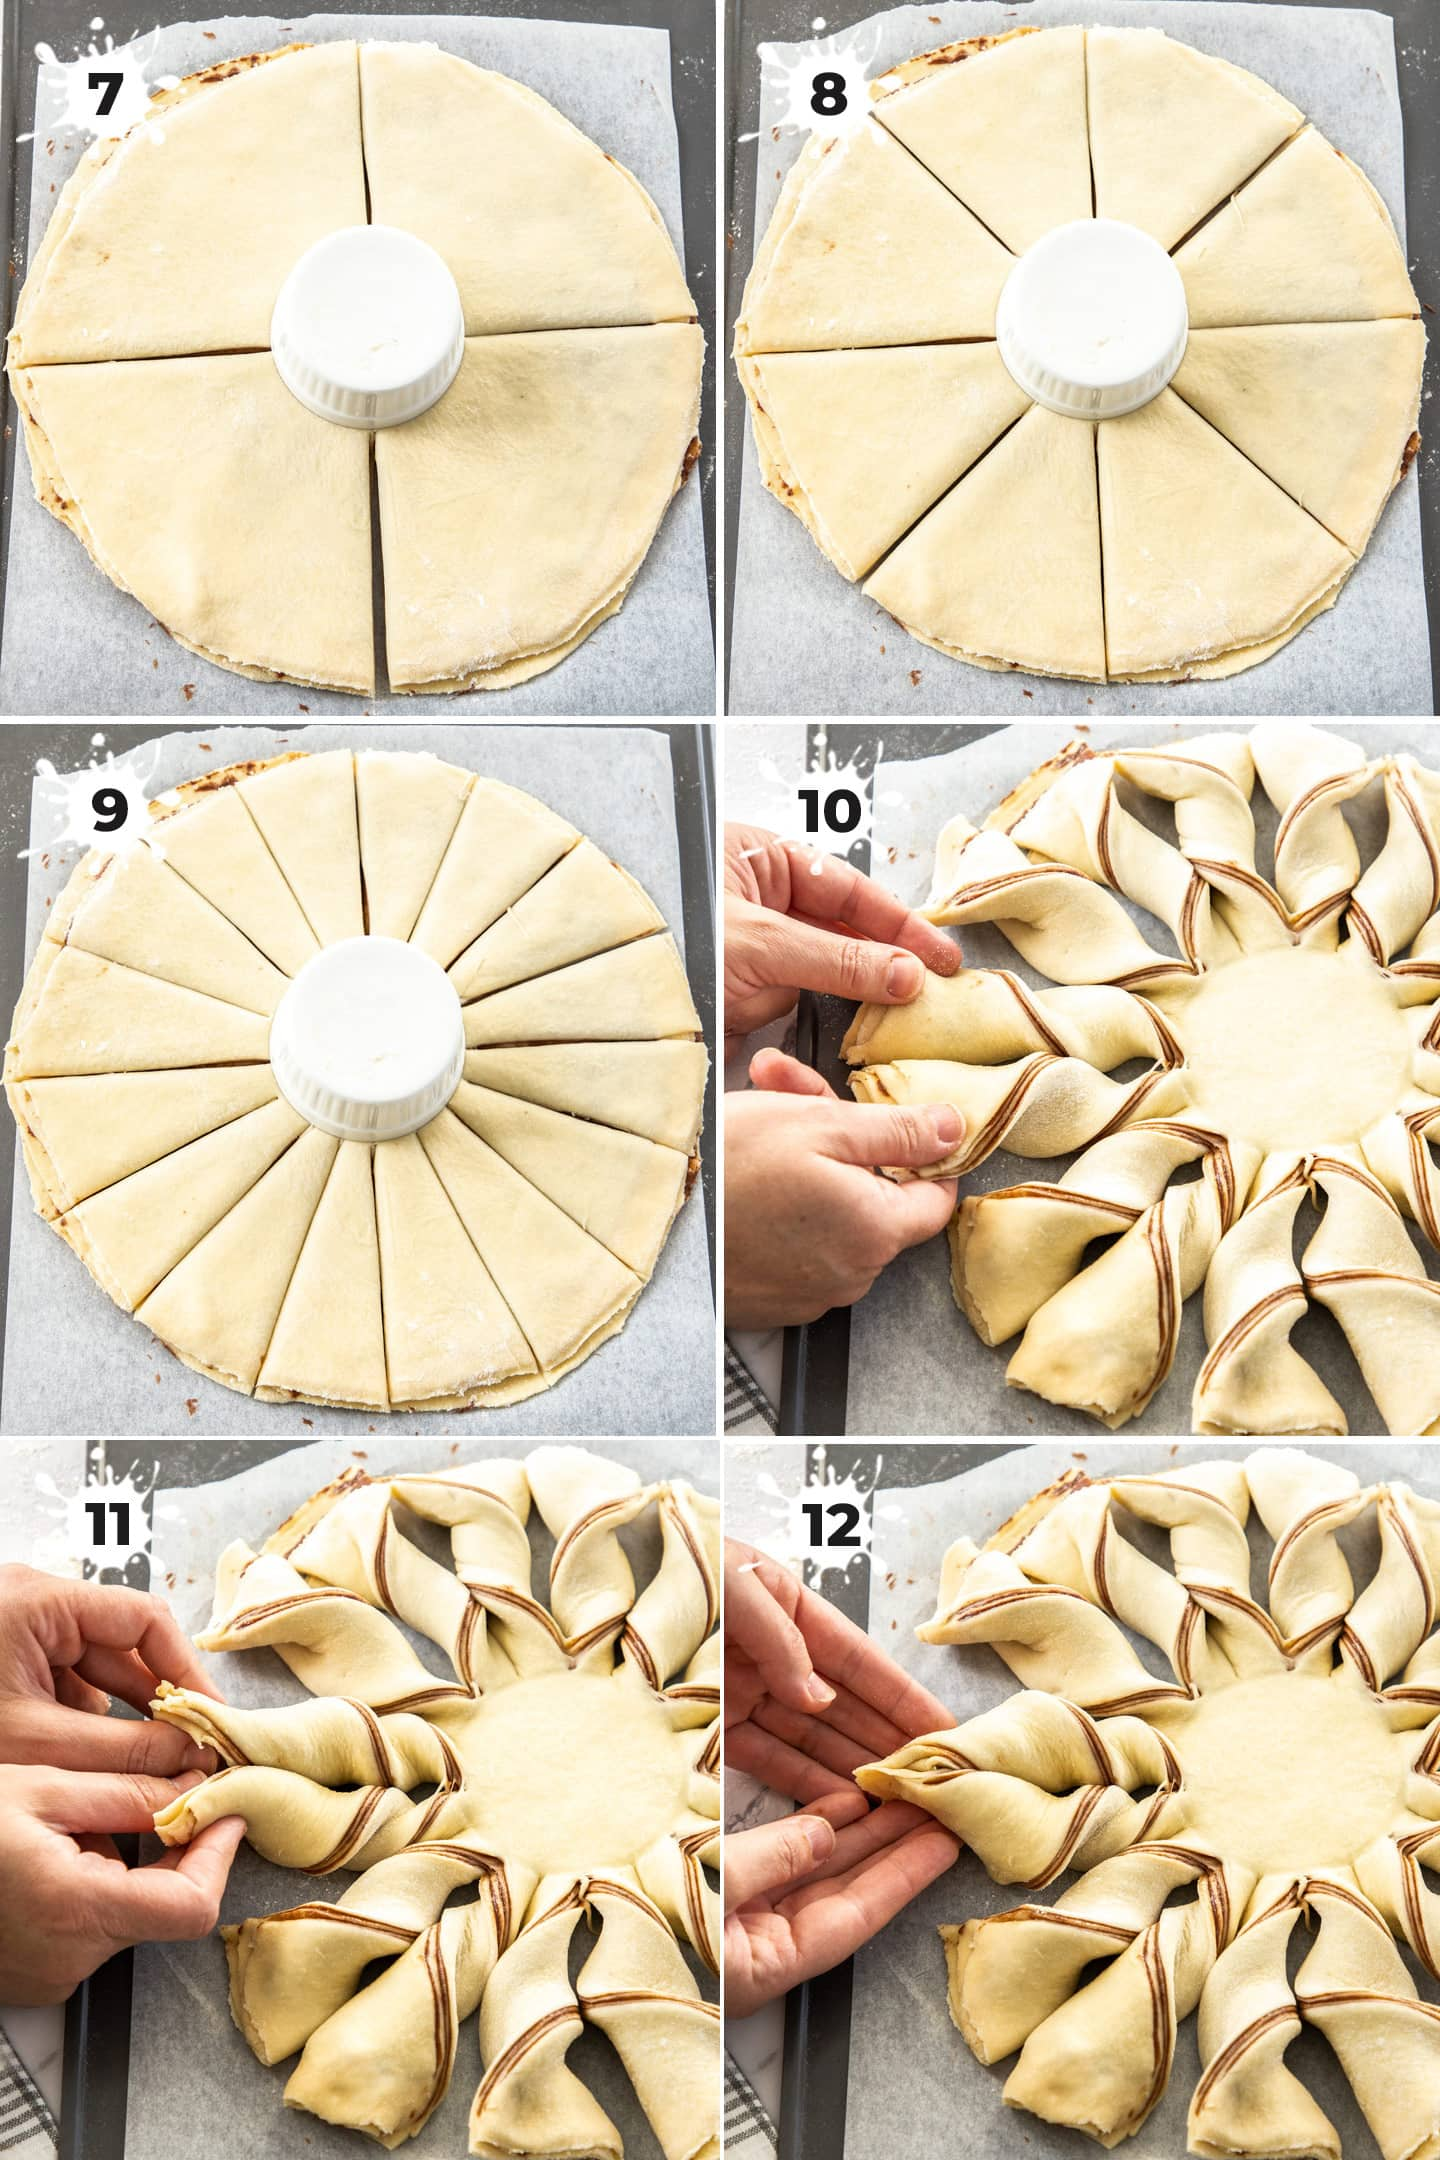 6 images showing how to shape star bread